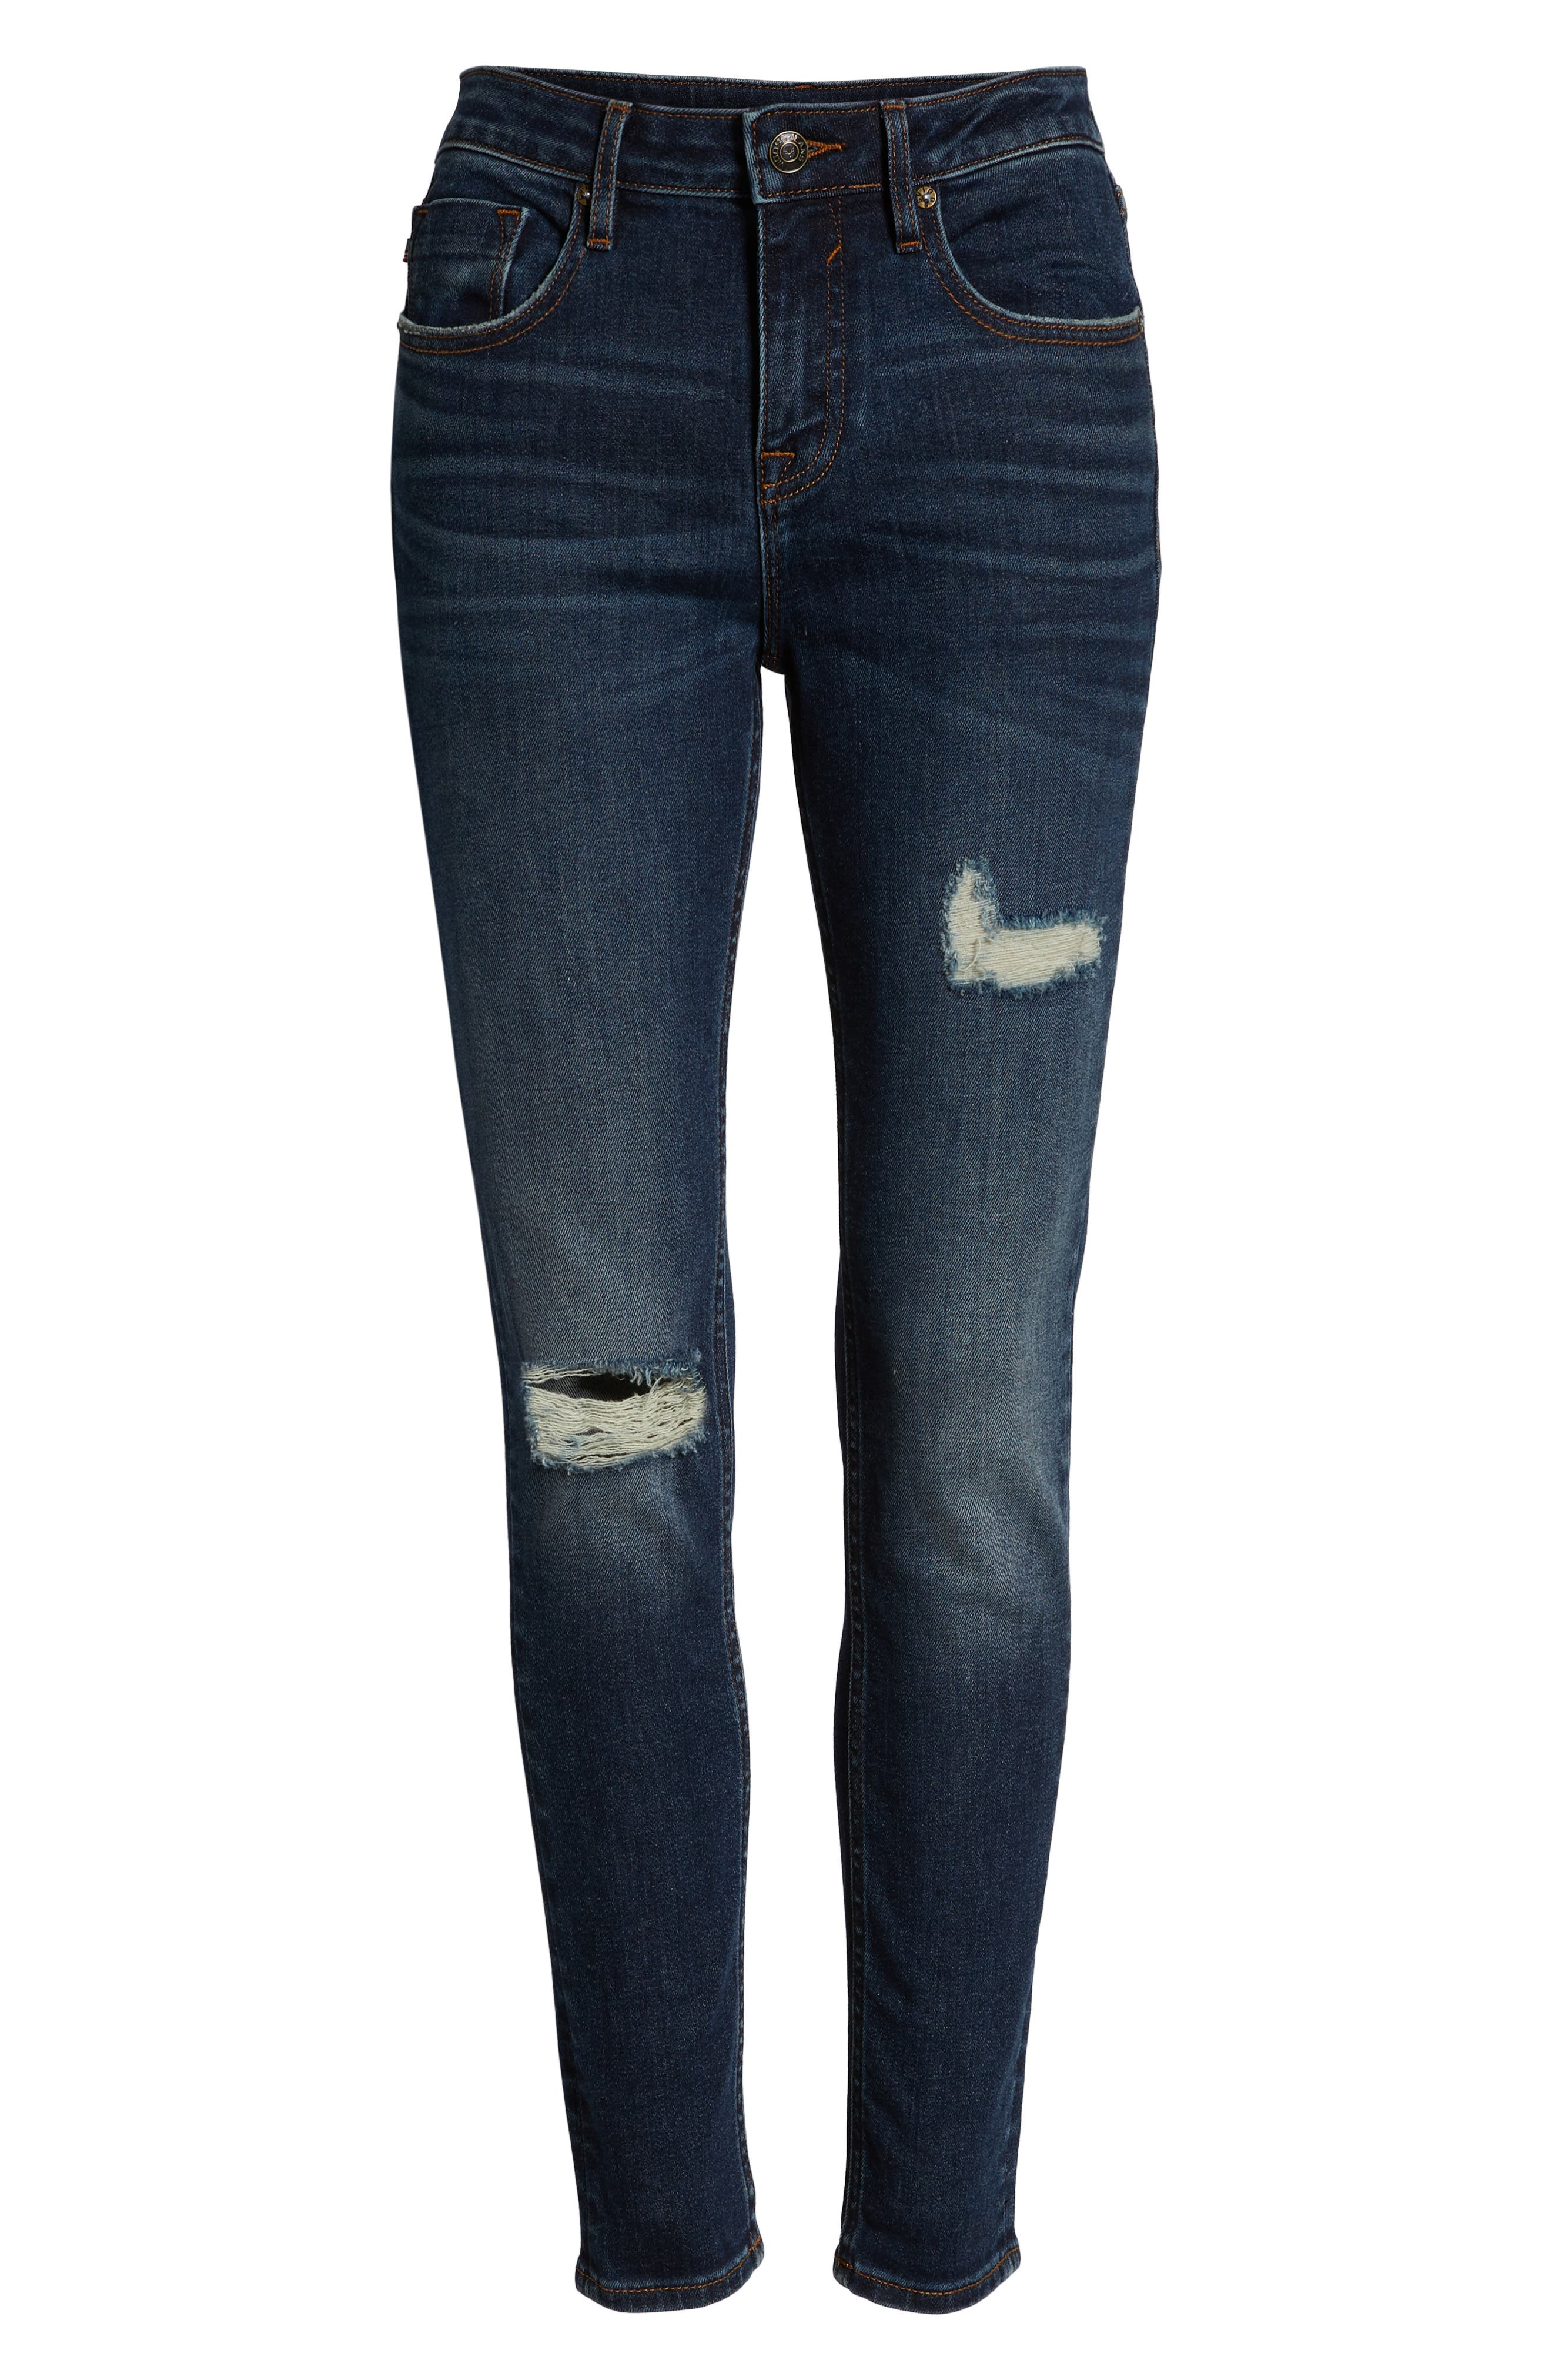 Marley Ripped Skinny Jeans,                             Alternate thumbnail 7, color,                             DARK WASH